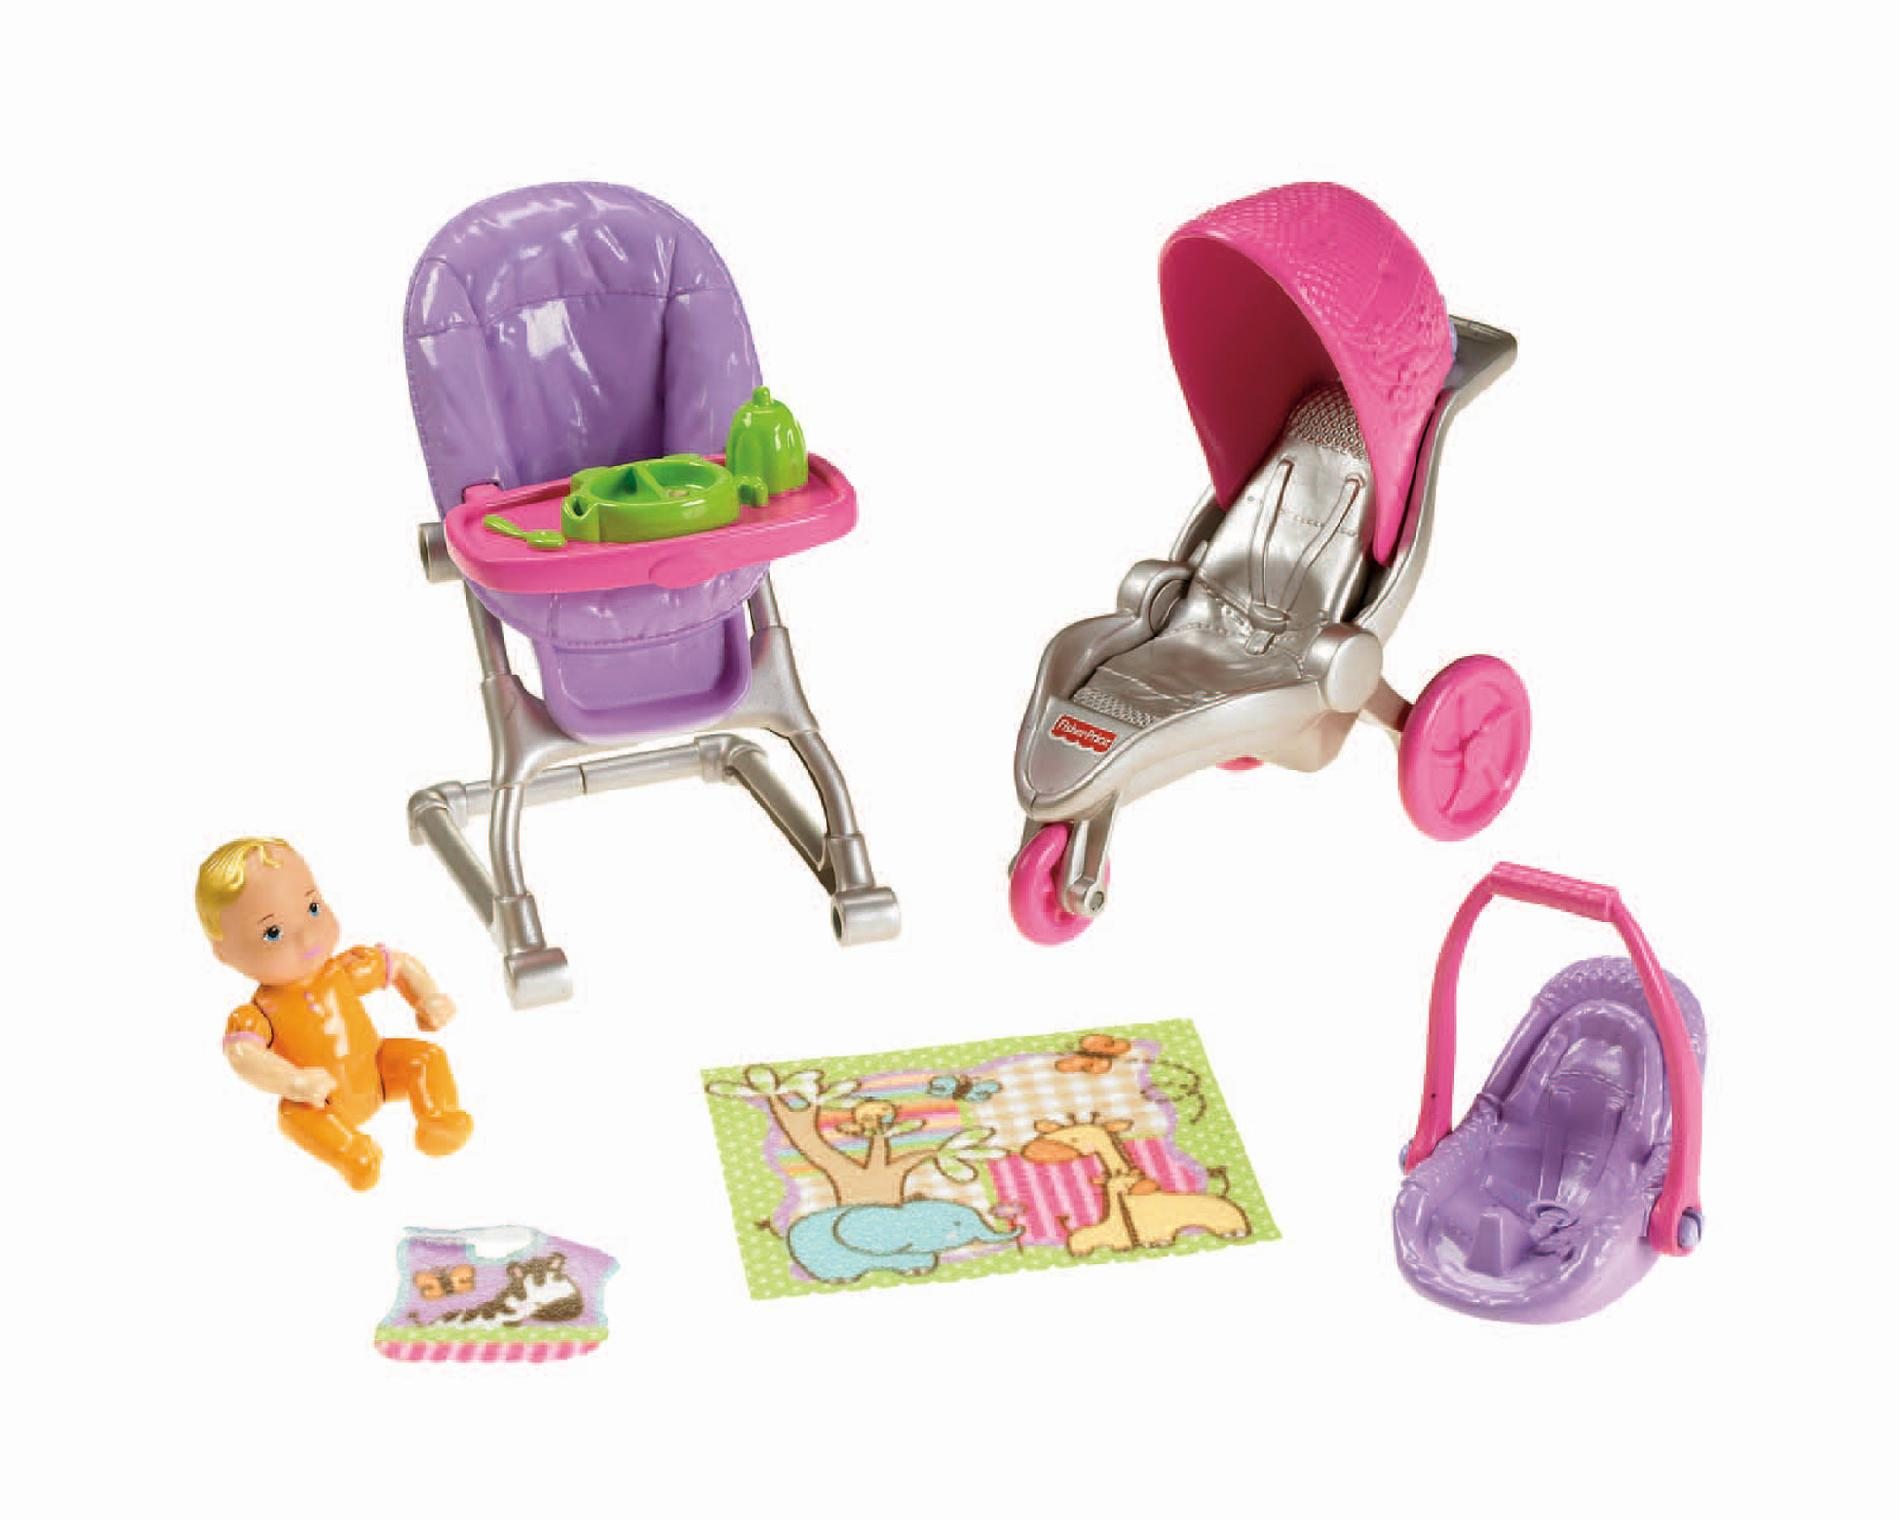 Loving Family Doll Everything for Baby™ Furniture PartNumber: 004W076920911011P KsnValue: 76920911 MfgPartNumber: X7761